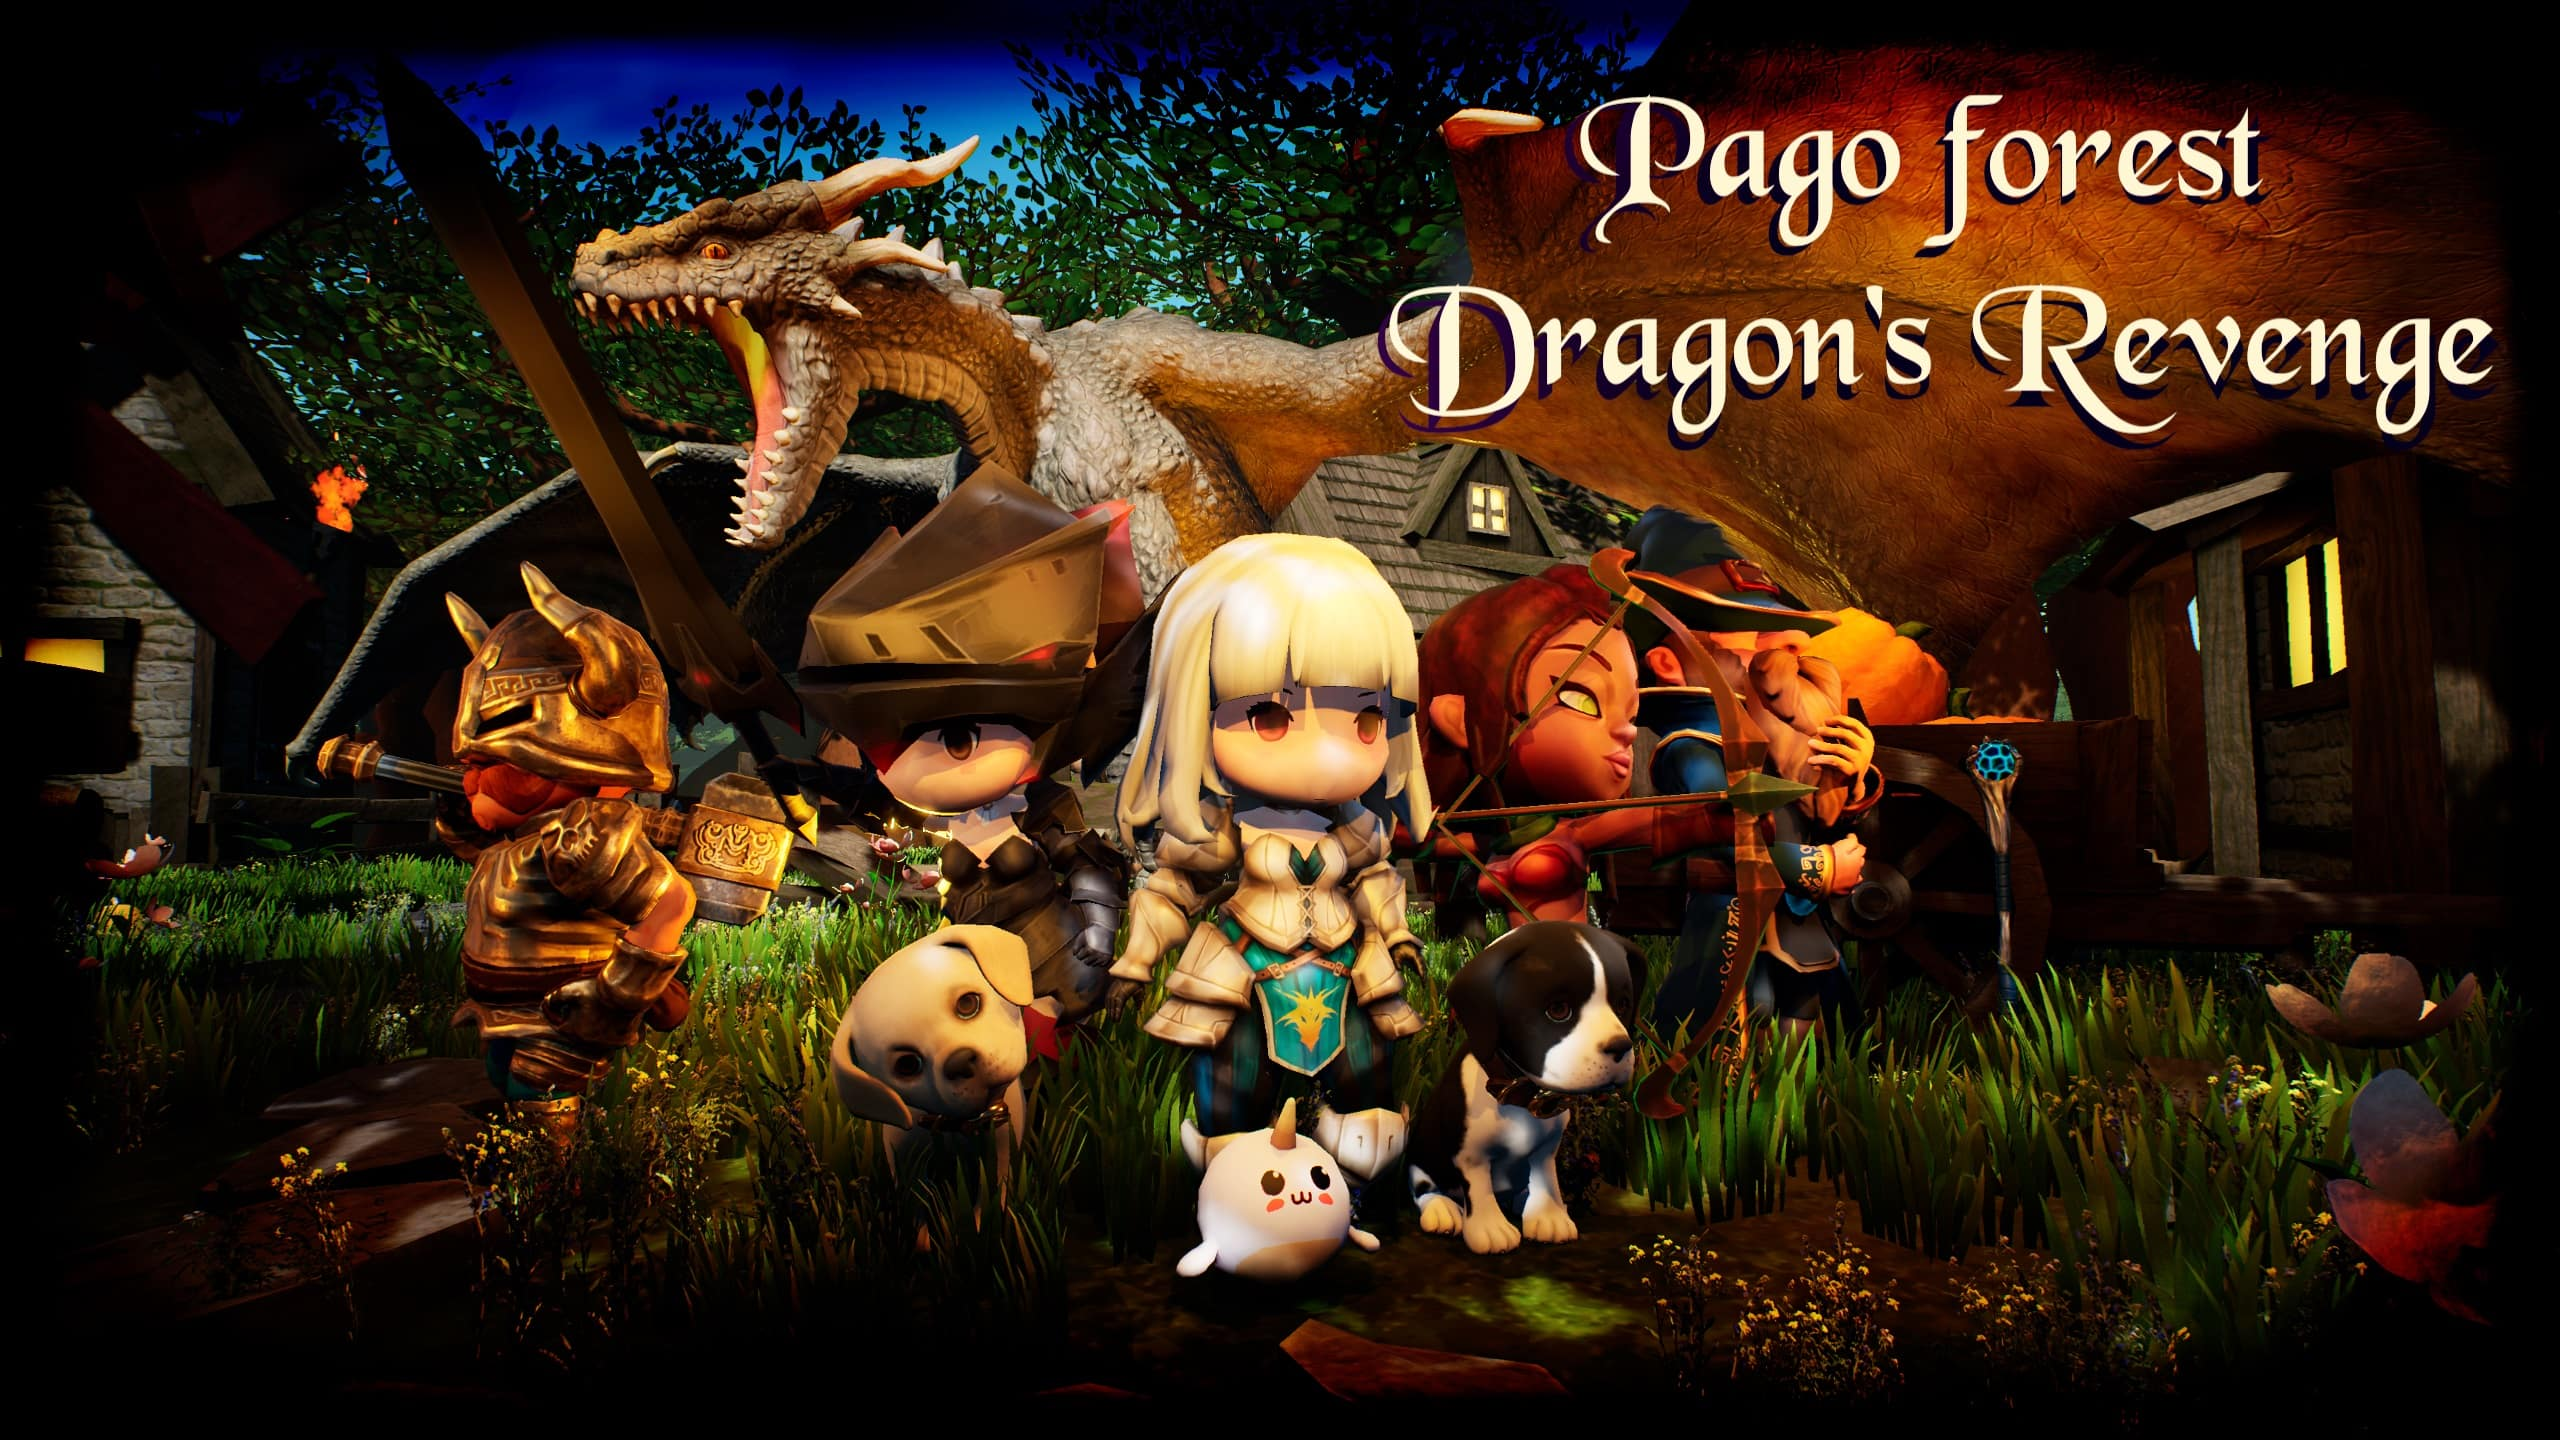 Pago forest: Dragon's revenge -50% $6.01